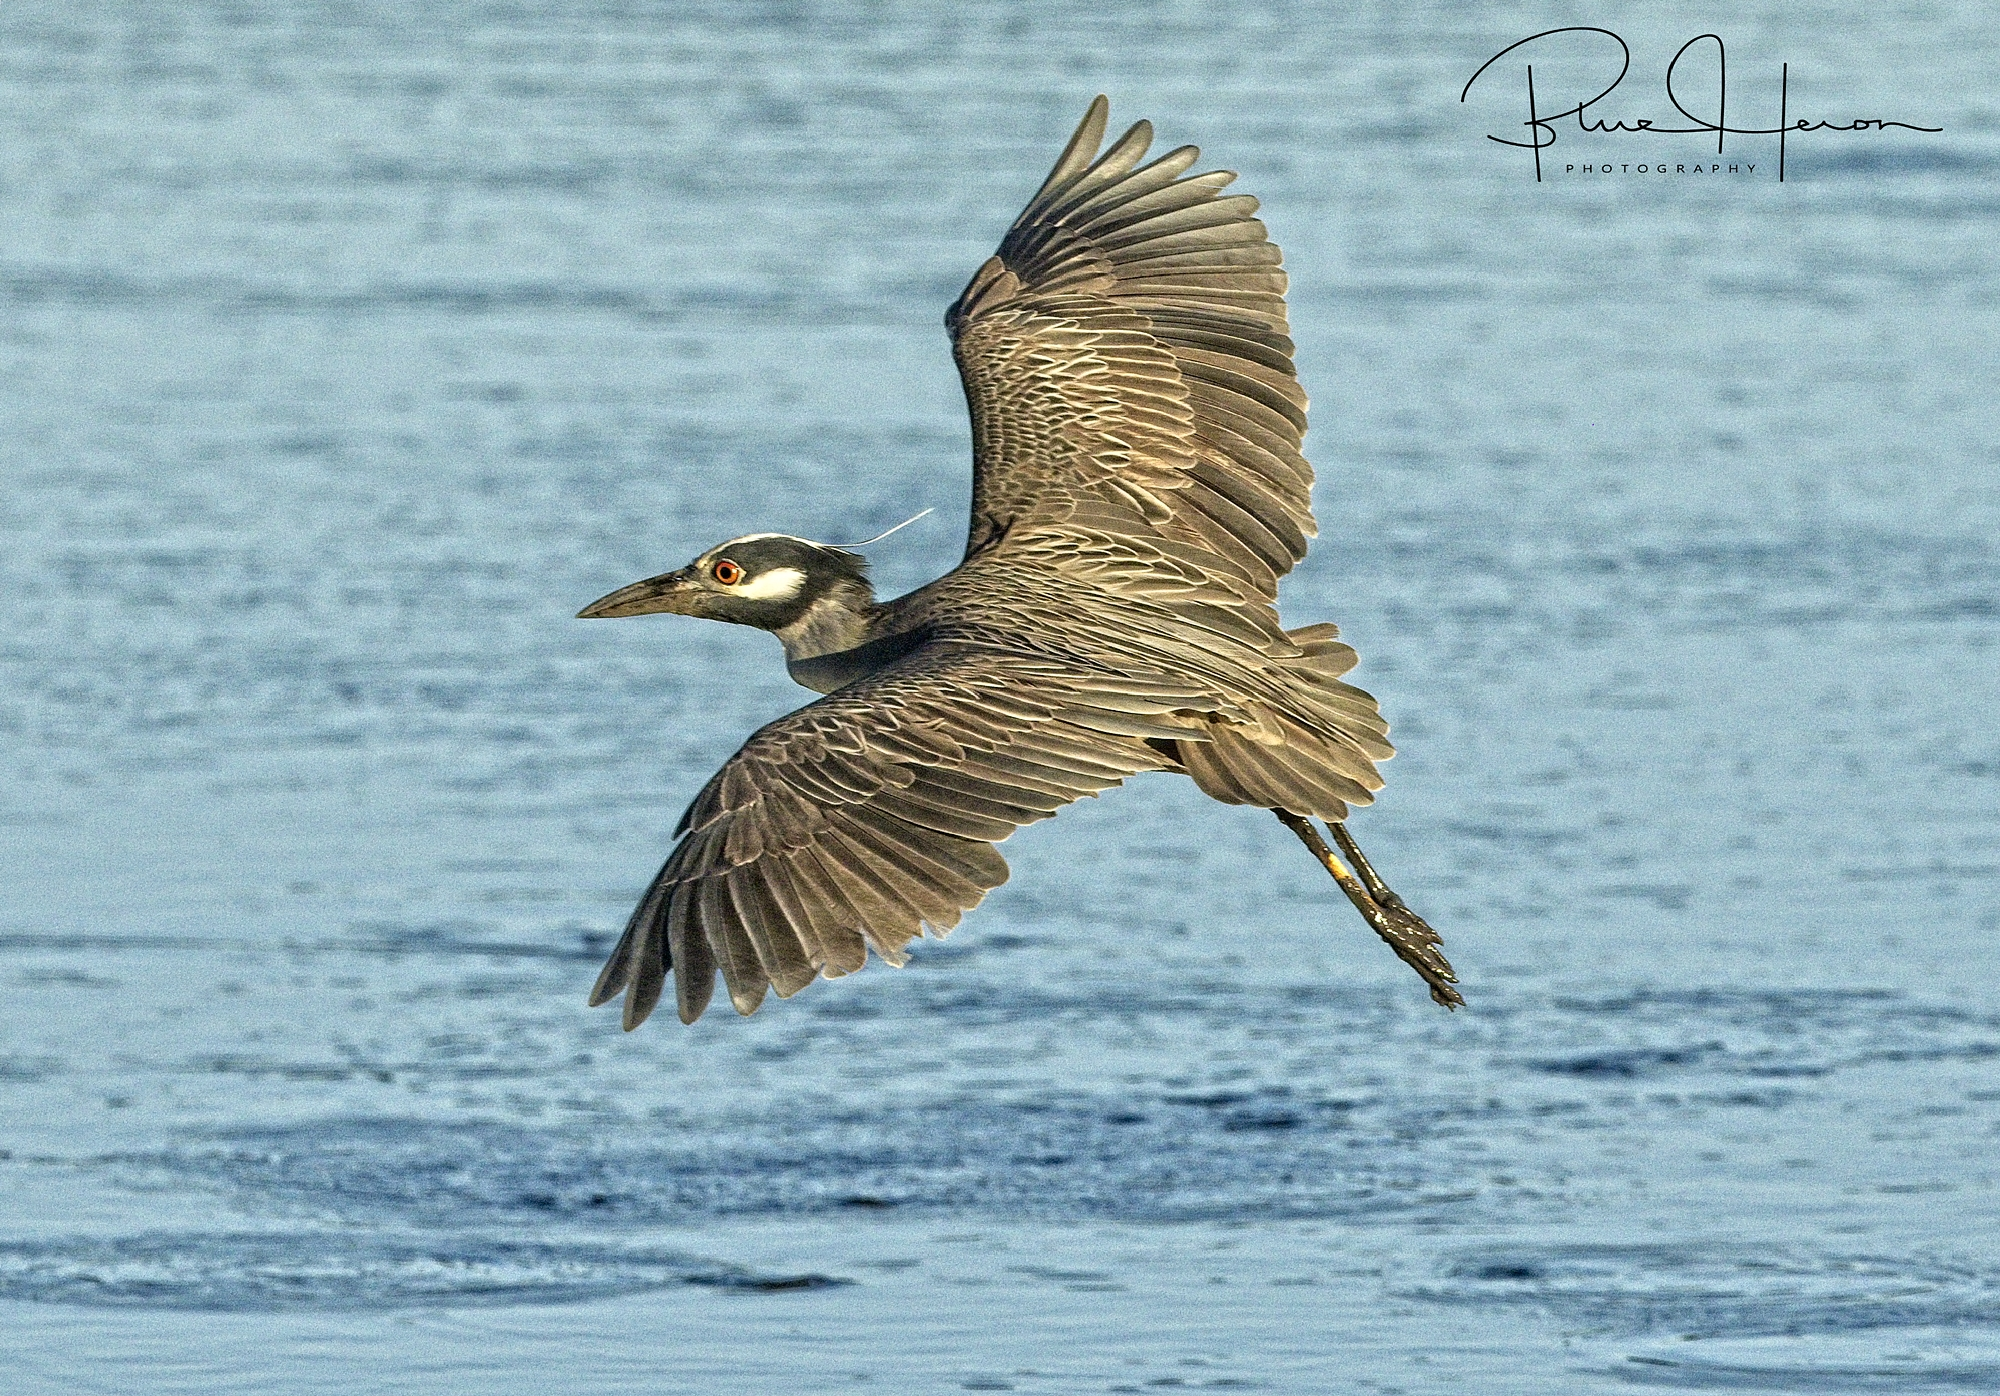 George, the Yellow-crowned Night Heron flying by enroute to a crab fest.